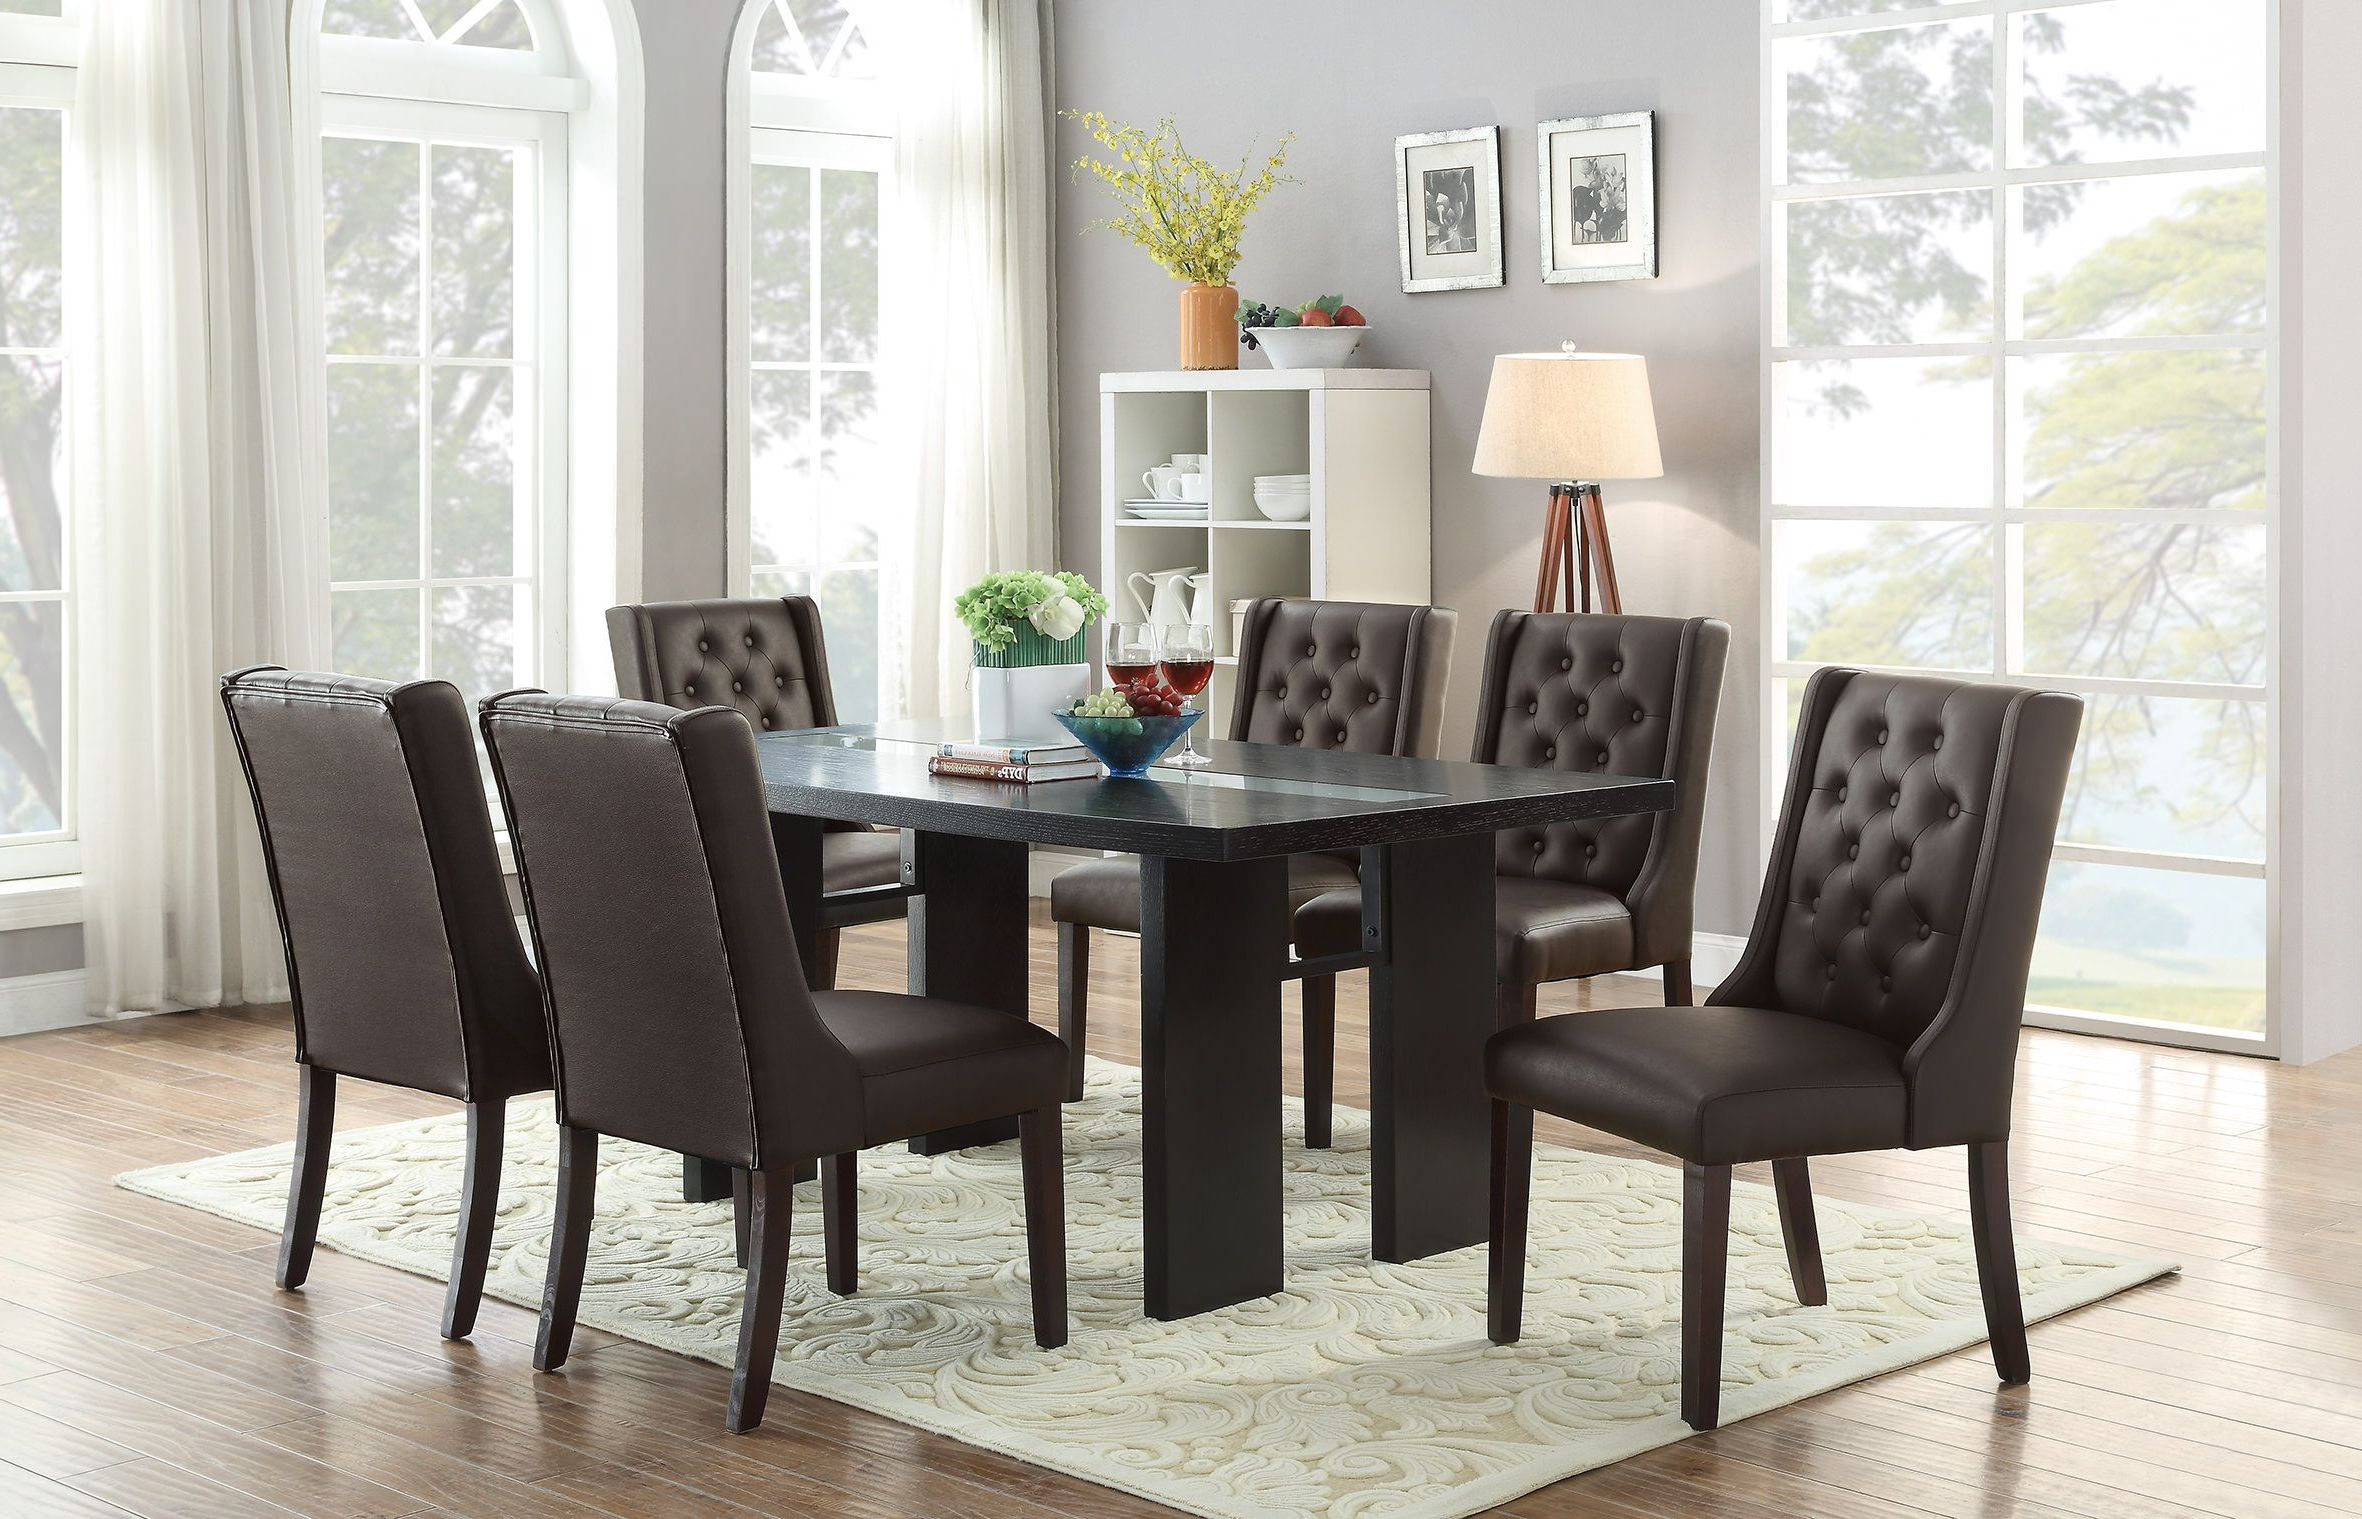 2020 F1501 Espresso Dining Chair (Set Of 2)Poundex In 2019 Inside Penelope 3 Piece Counter Height Wood Dining Sets (View 25 of 25)